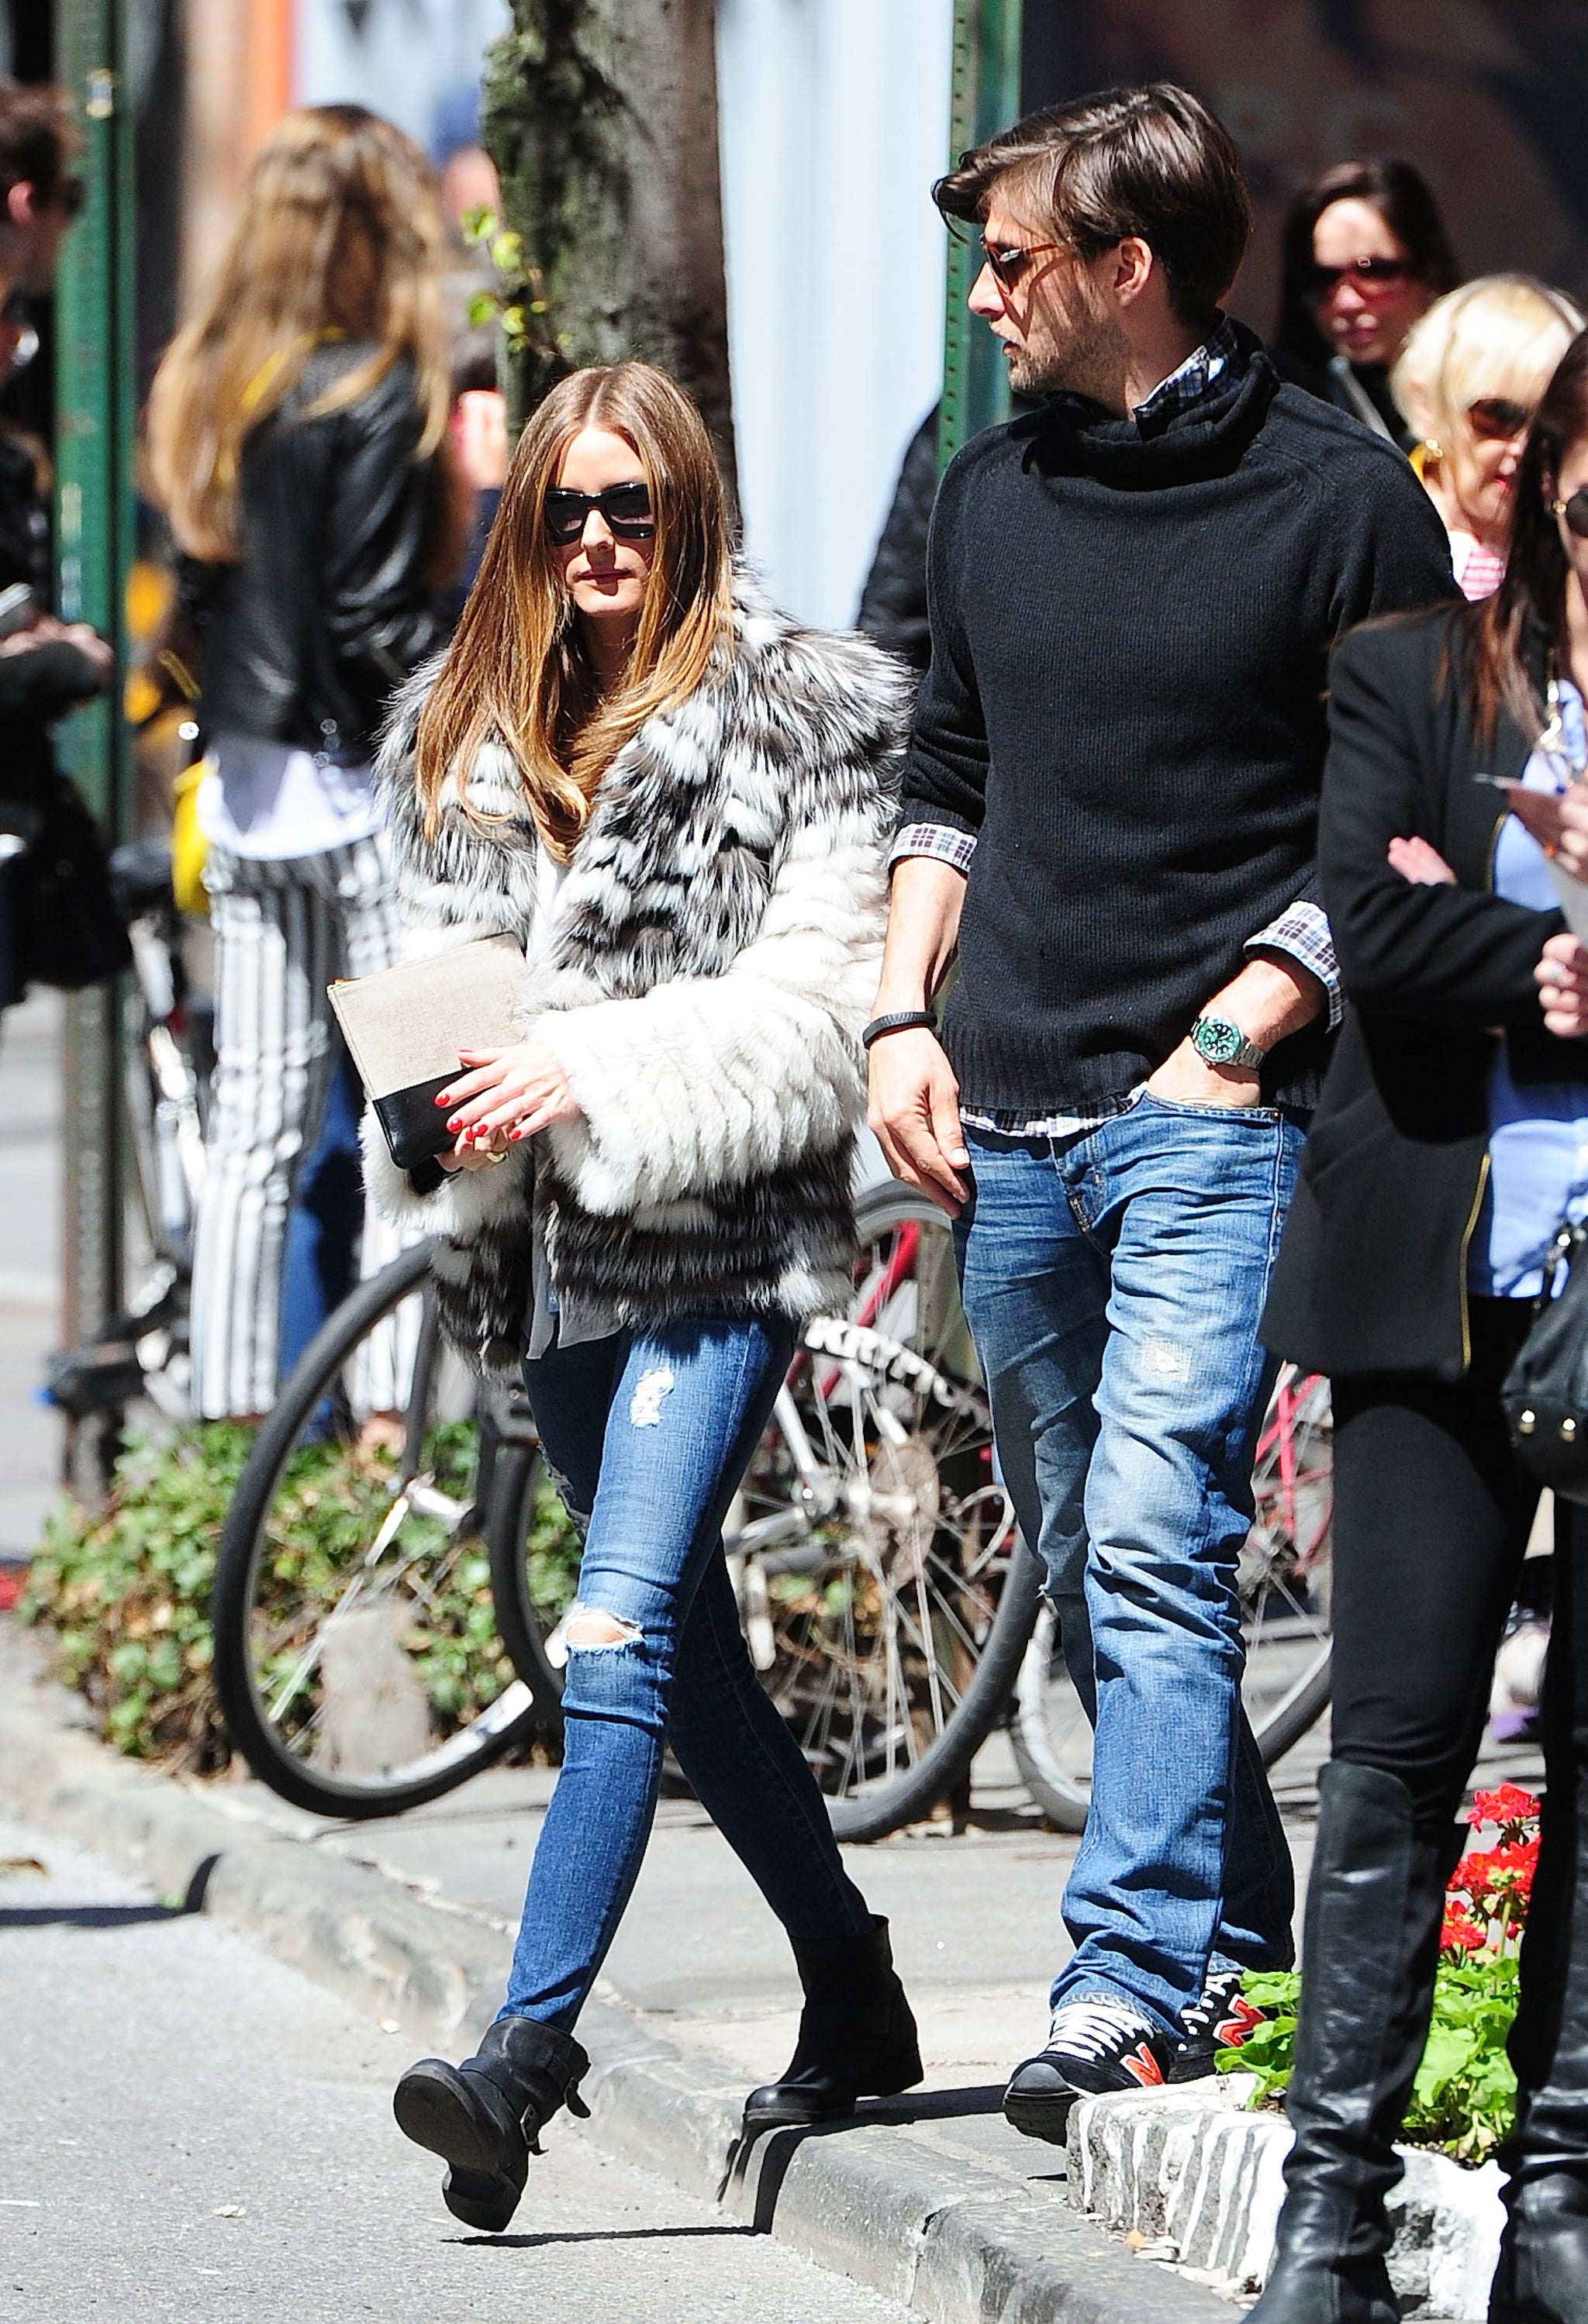 Olivia bundled up in a furry coat and skinny distressed denim for a perfect play on downtown-cool.